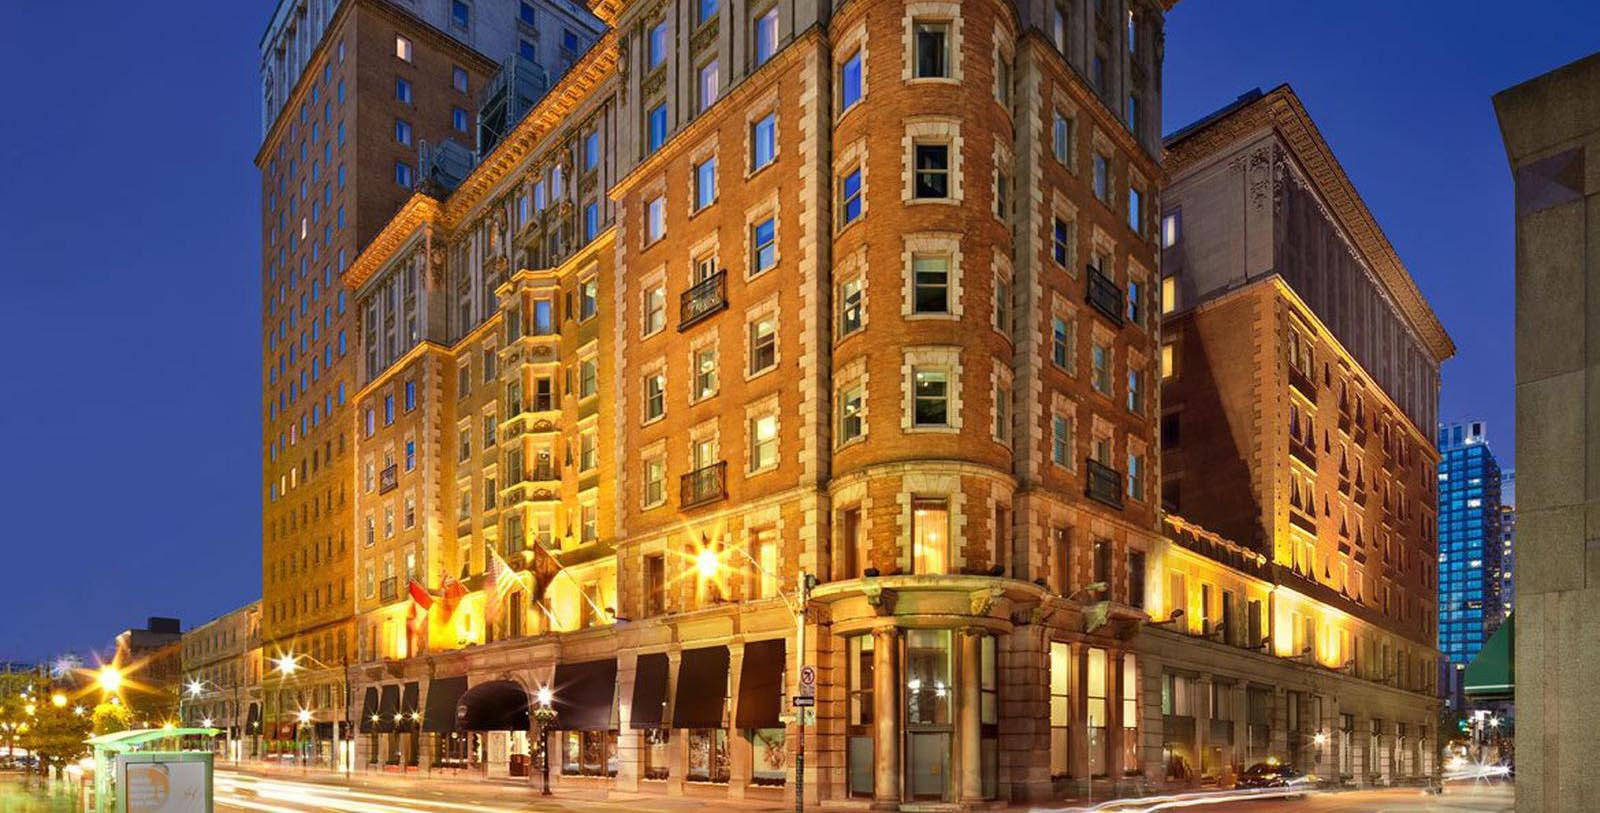 Image of Hotel Exterior The Omni King Edward Hotel, 1903, Member of Historic Hotels Worldwide, in Toronto, Ontario, Canada, Special Offers, Discounted Rates, Families, Romantic Escape, Honeymoons, Anniversaries, Reunions